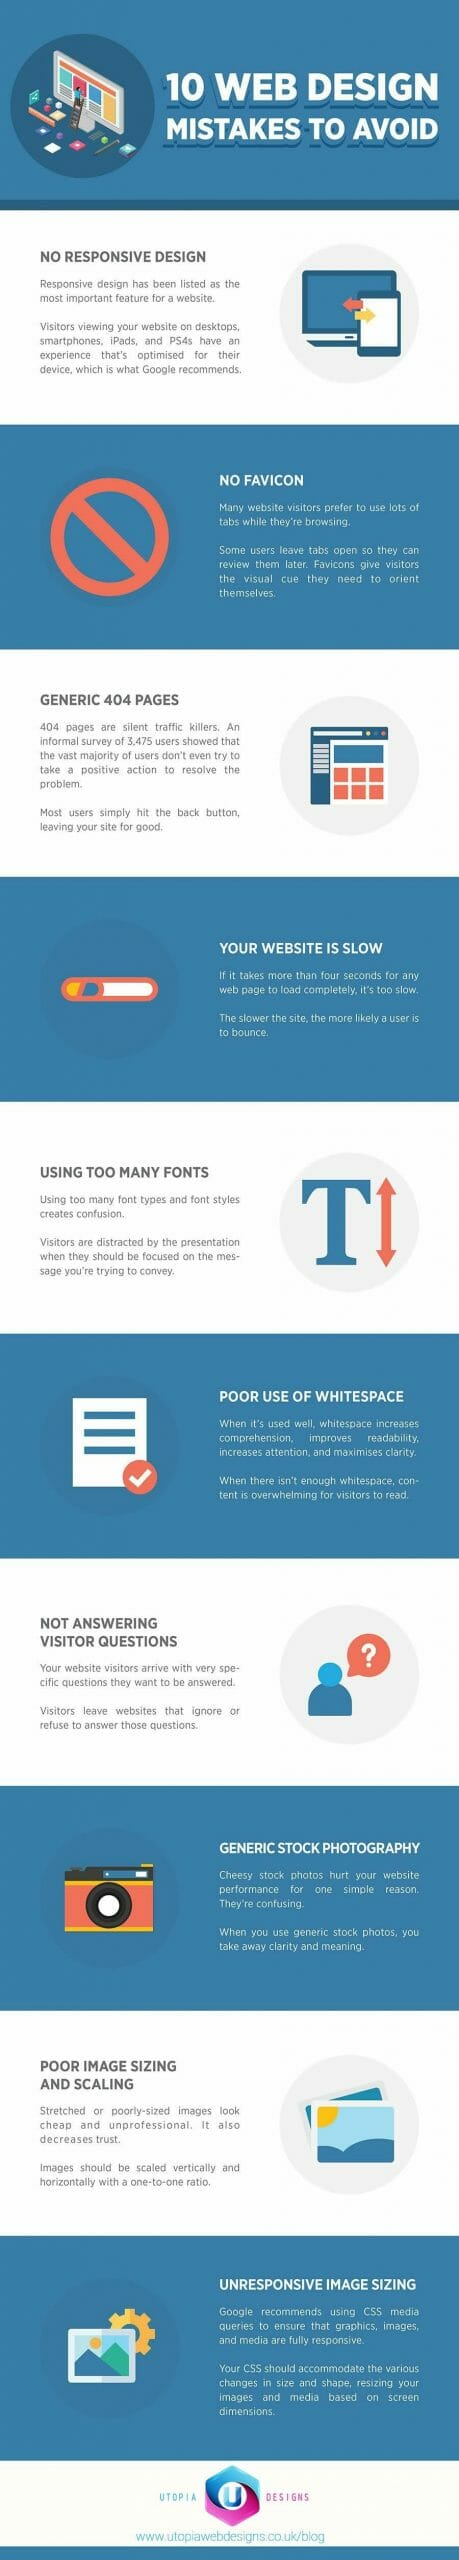 10 Web Design Mistakes To Avoid-Infographic